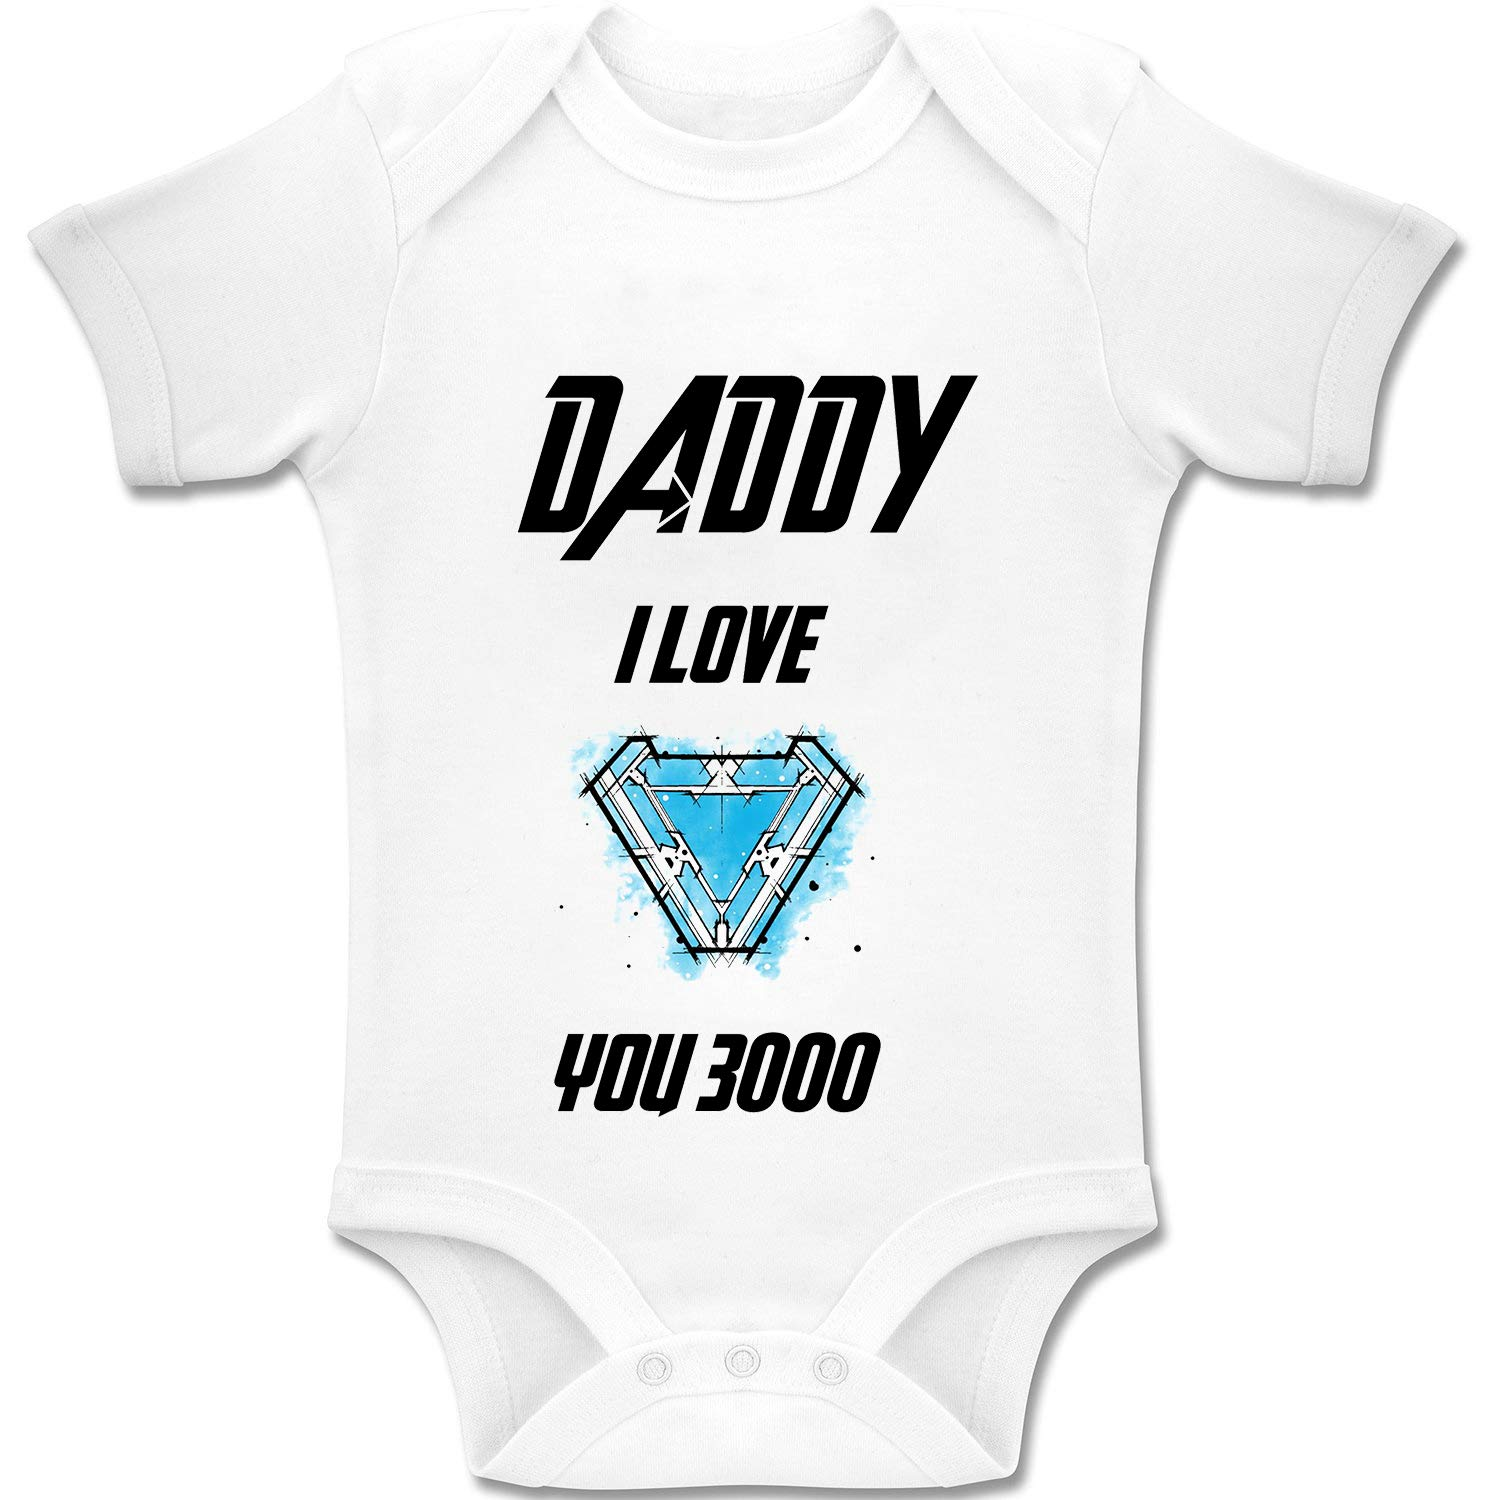 Baby Romper Body in Cotone Biologico per Ragazzi e Ragazze 0-24 Mesi 0-3 Messi Acen Merchandise Daddy I Love You 3000